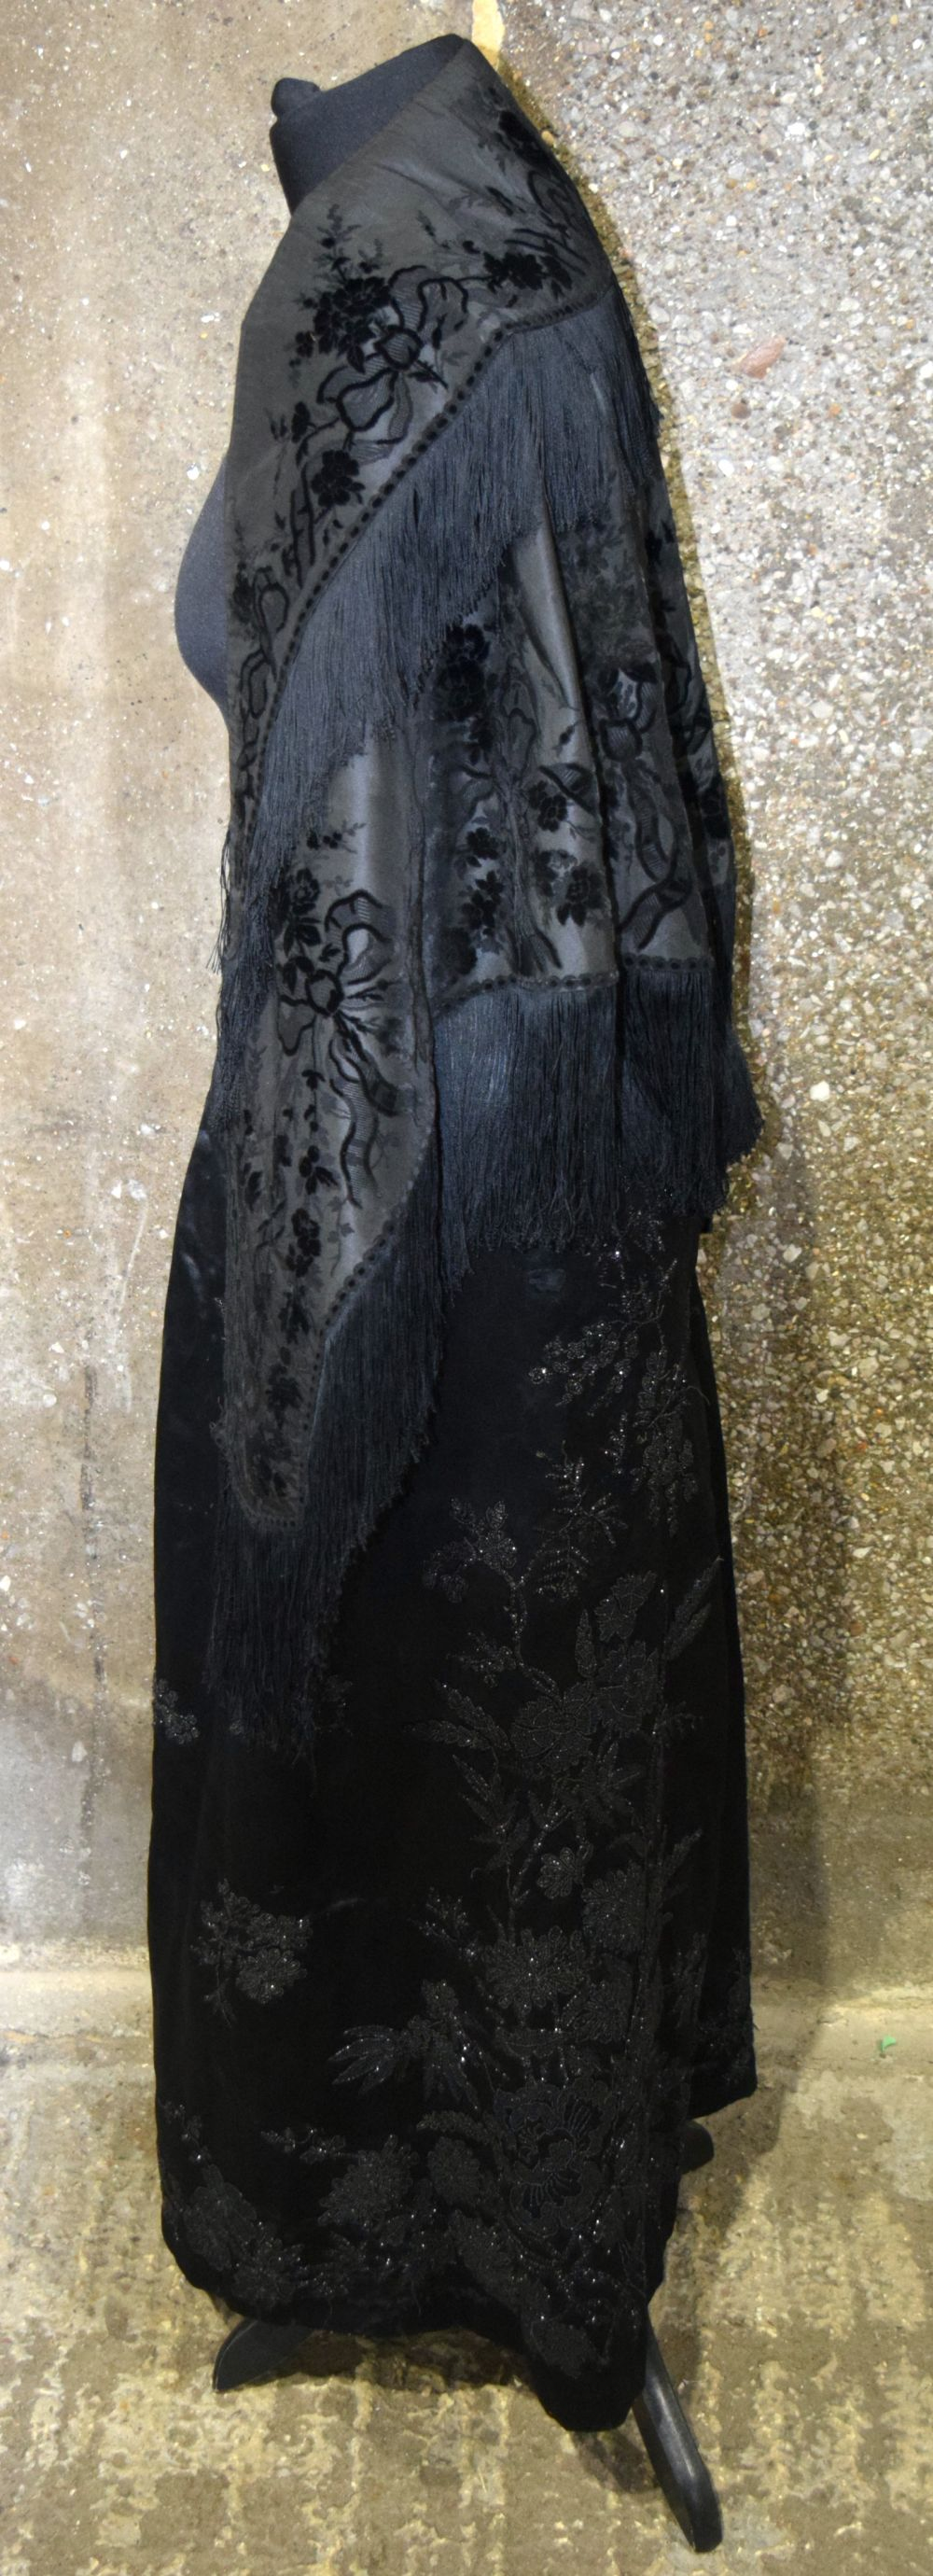 A Vintage Heavy satin skirt together with a shawl. - Image 2 of 6